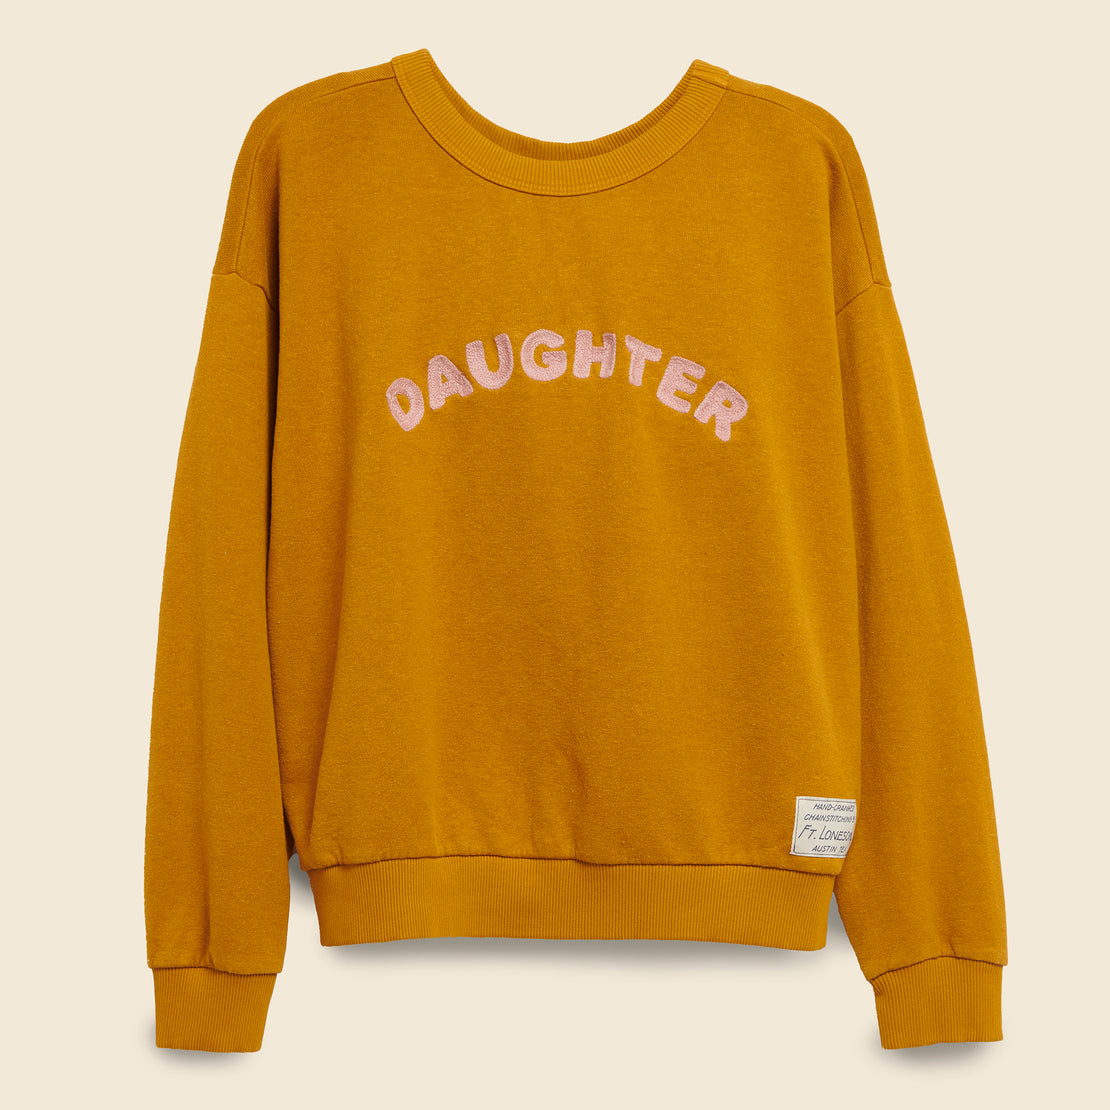 Fort Lonesome DAUGHTER Sweatshirt - Gold/Pink